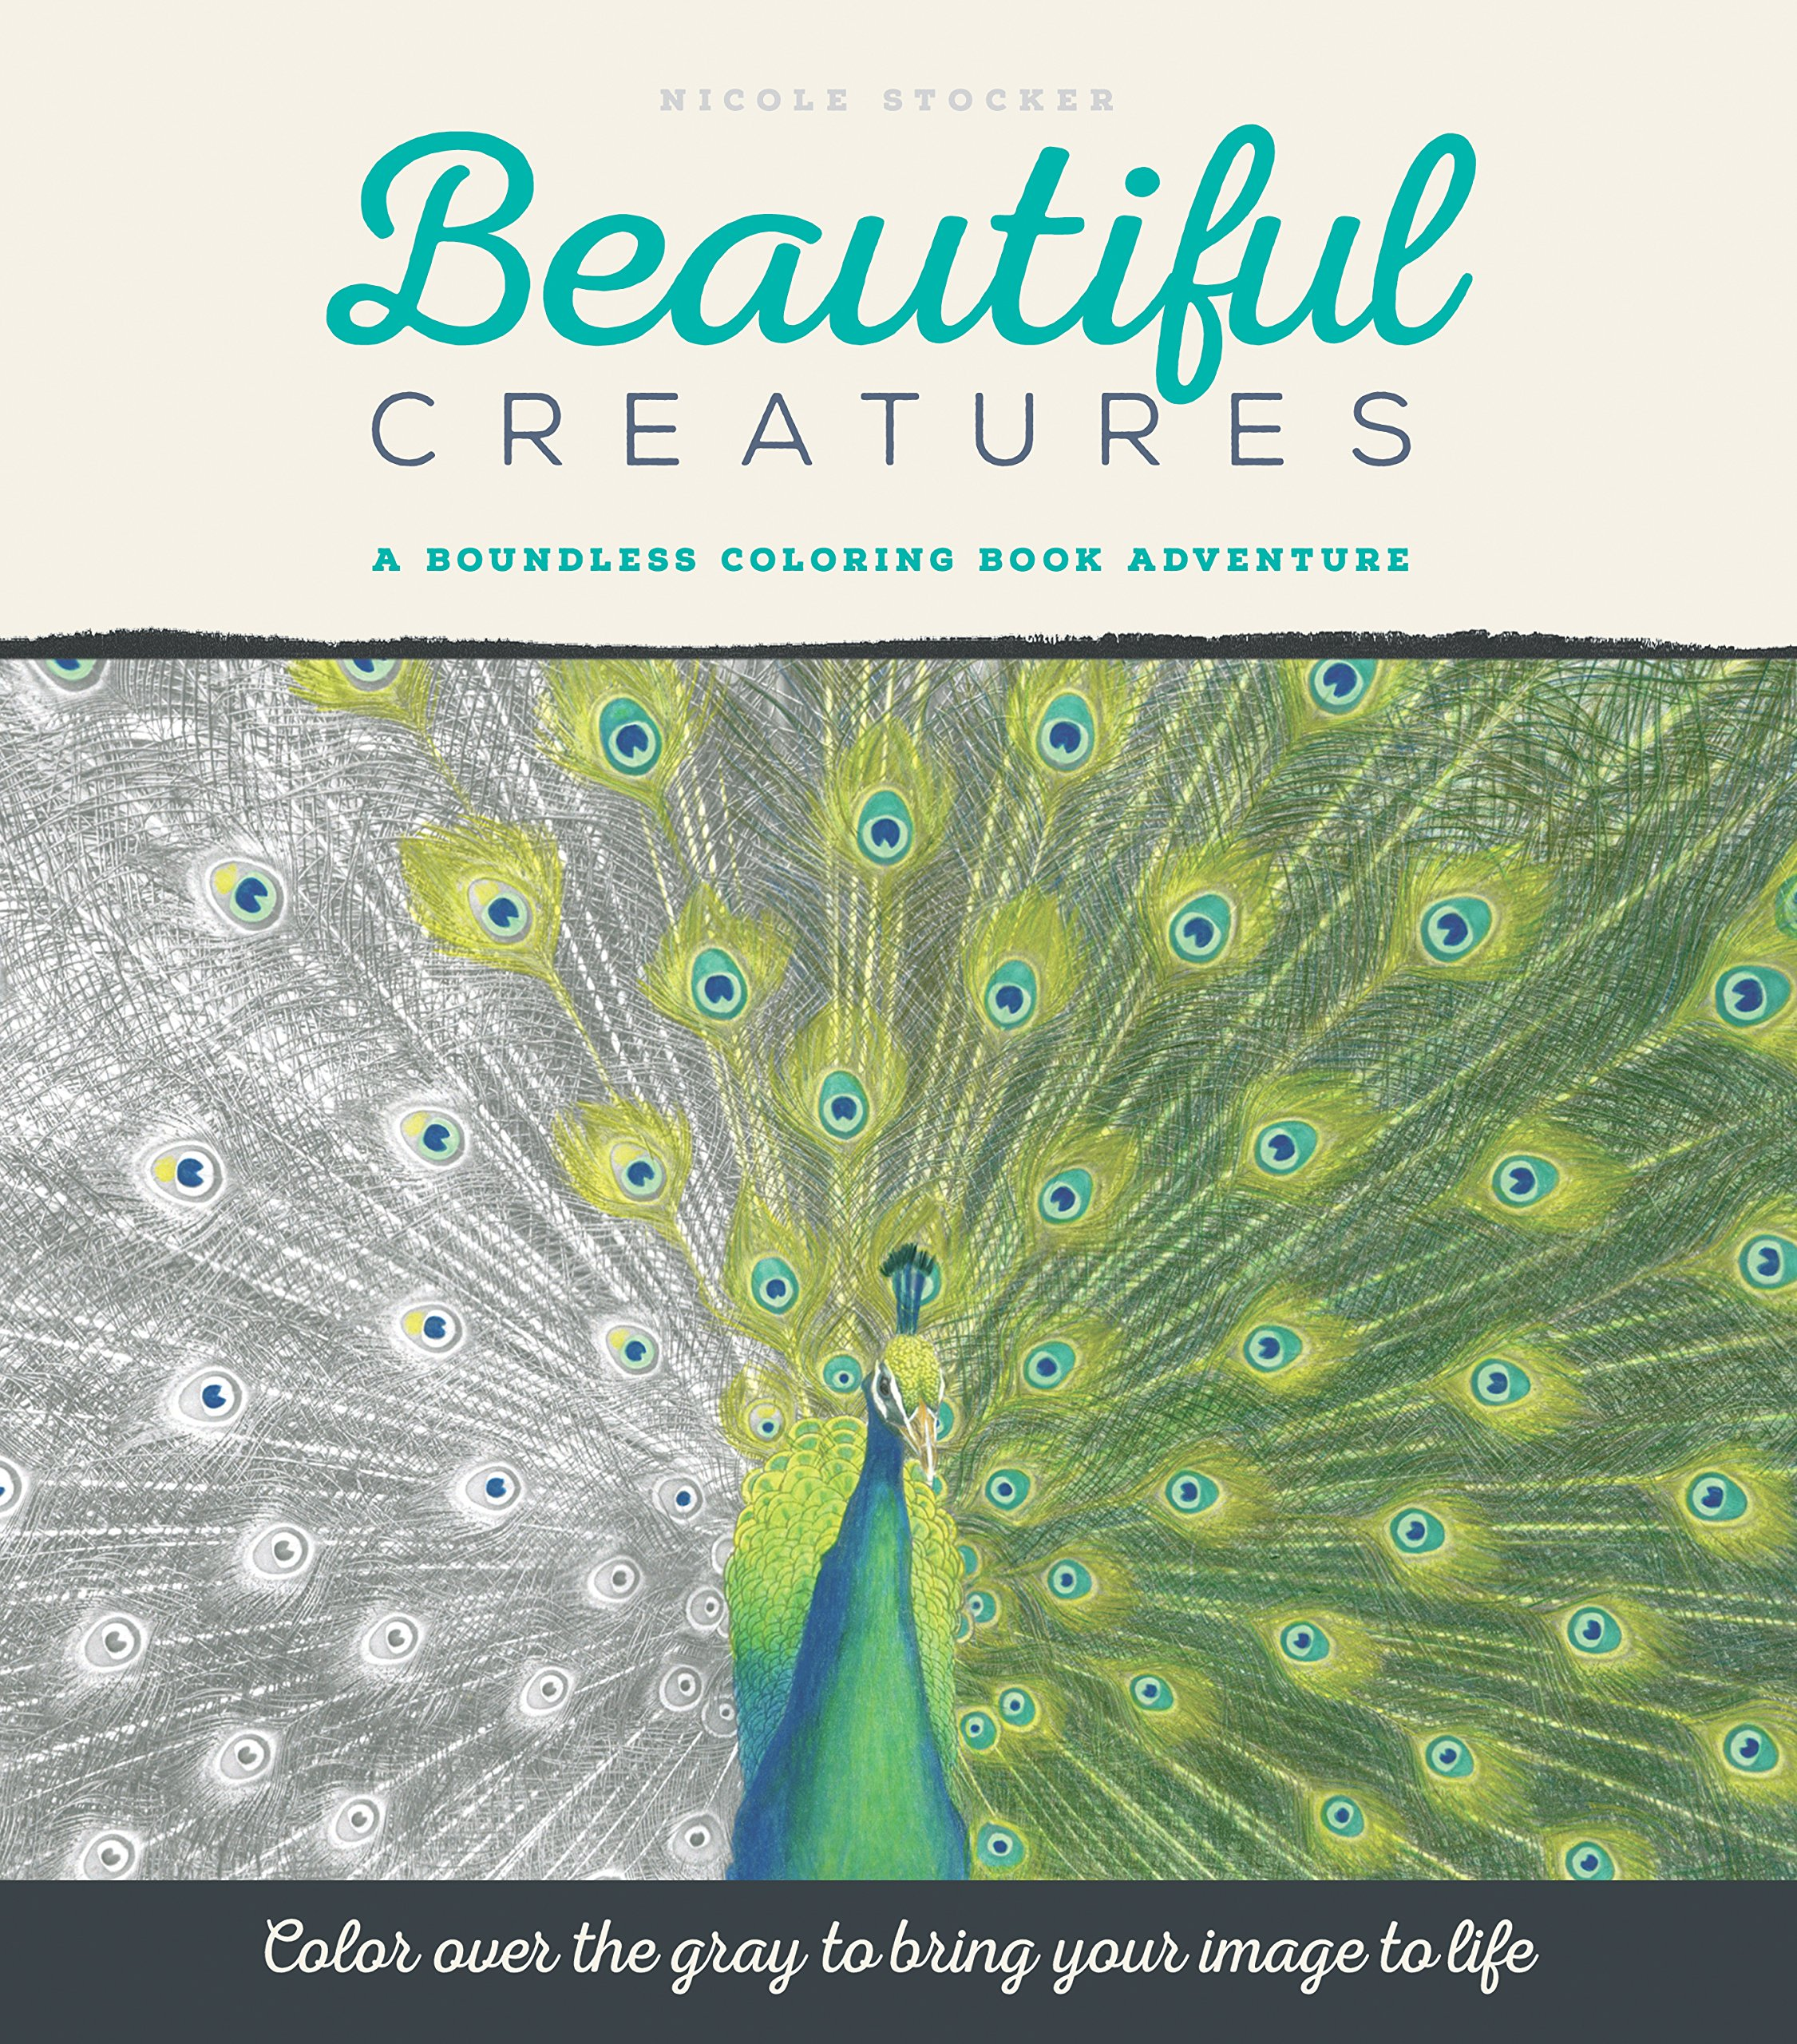 Amazon.com: Beautiful Creatures: A Grayscale Adult Coloring Book of ...